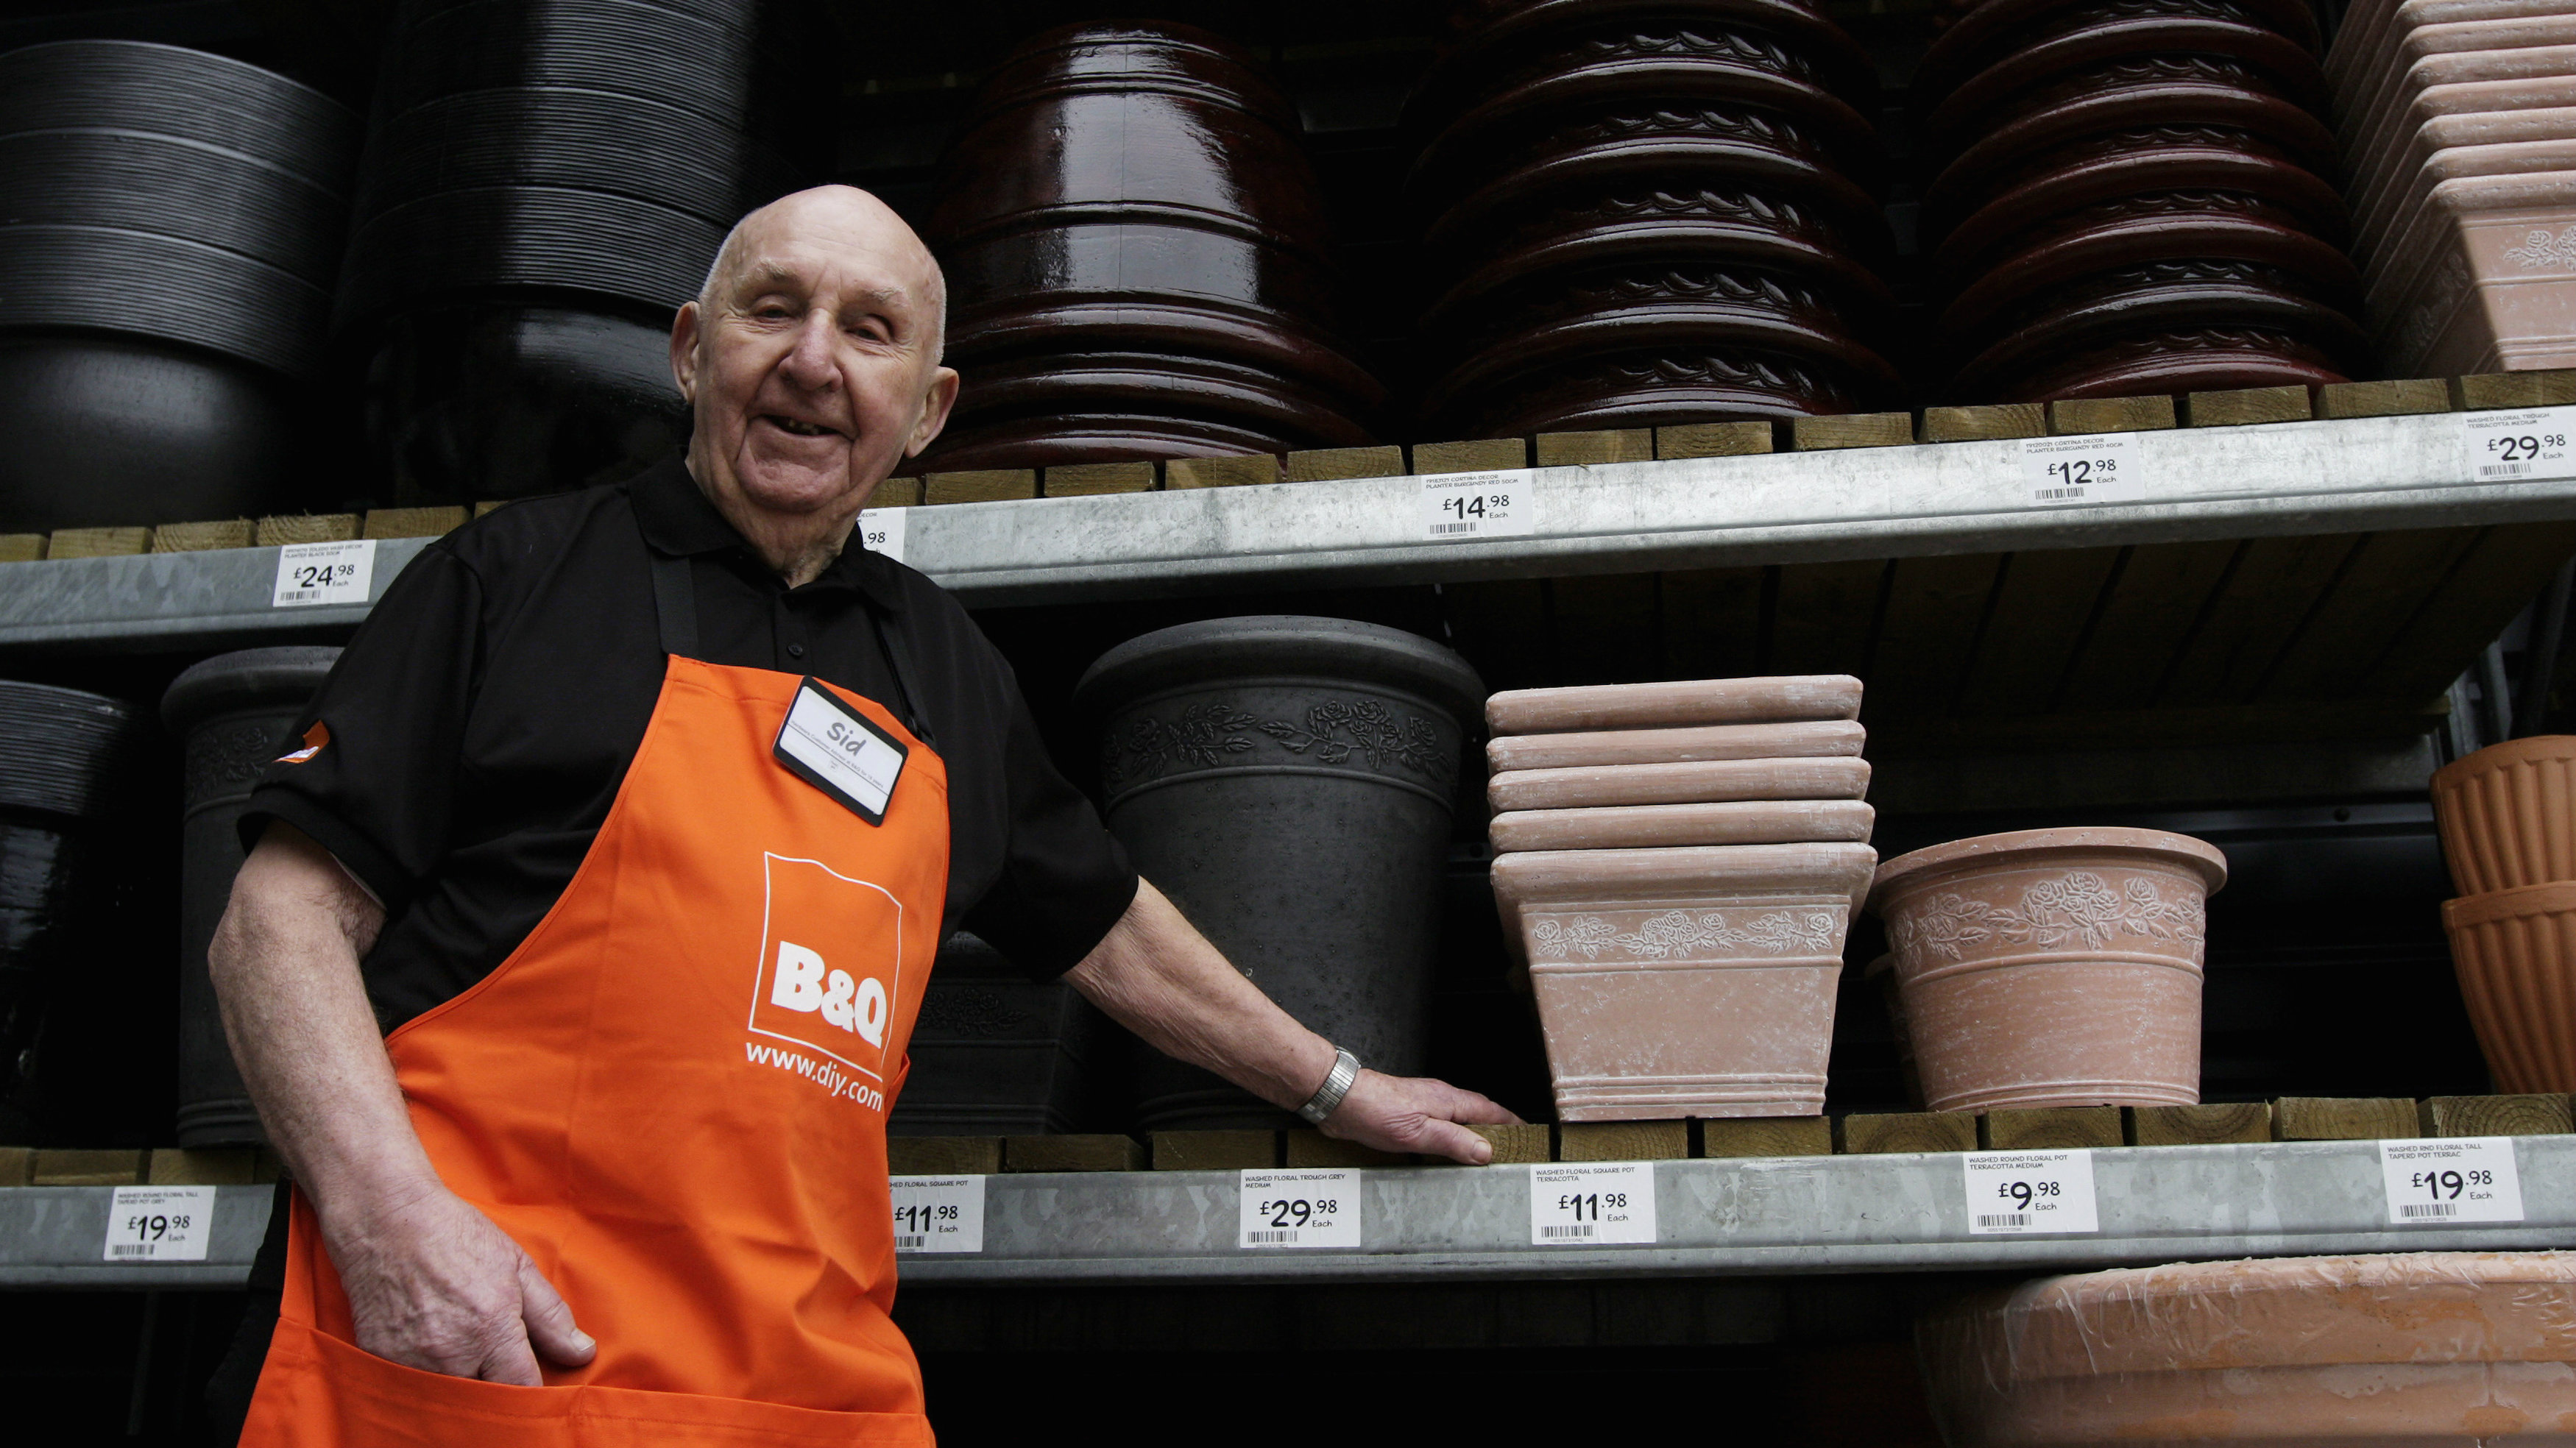 Employee Sydney Prior, 95, poses for a portrait at the B&Q store in the southwest London suburb of New Malden, March 24, 2010. The participation of older workers has increased in recent years, particularly in part-time jobs for men like Prior, whose employer, retail chain B&Q, has for decades made a public point of its enthusiasm for older staff.